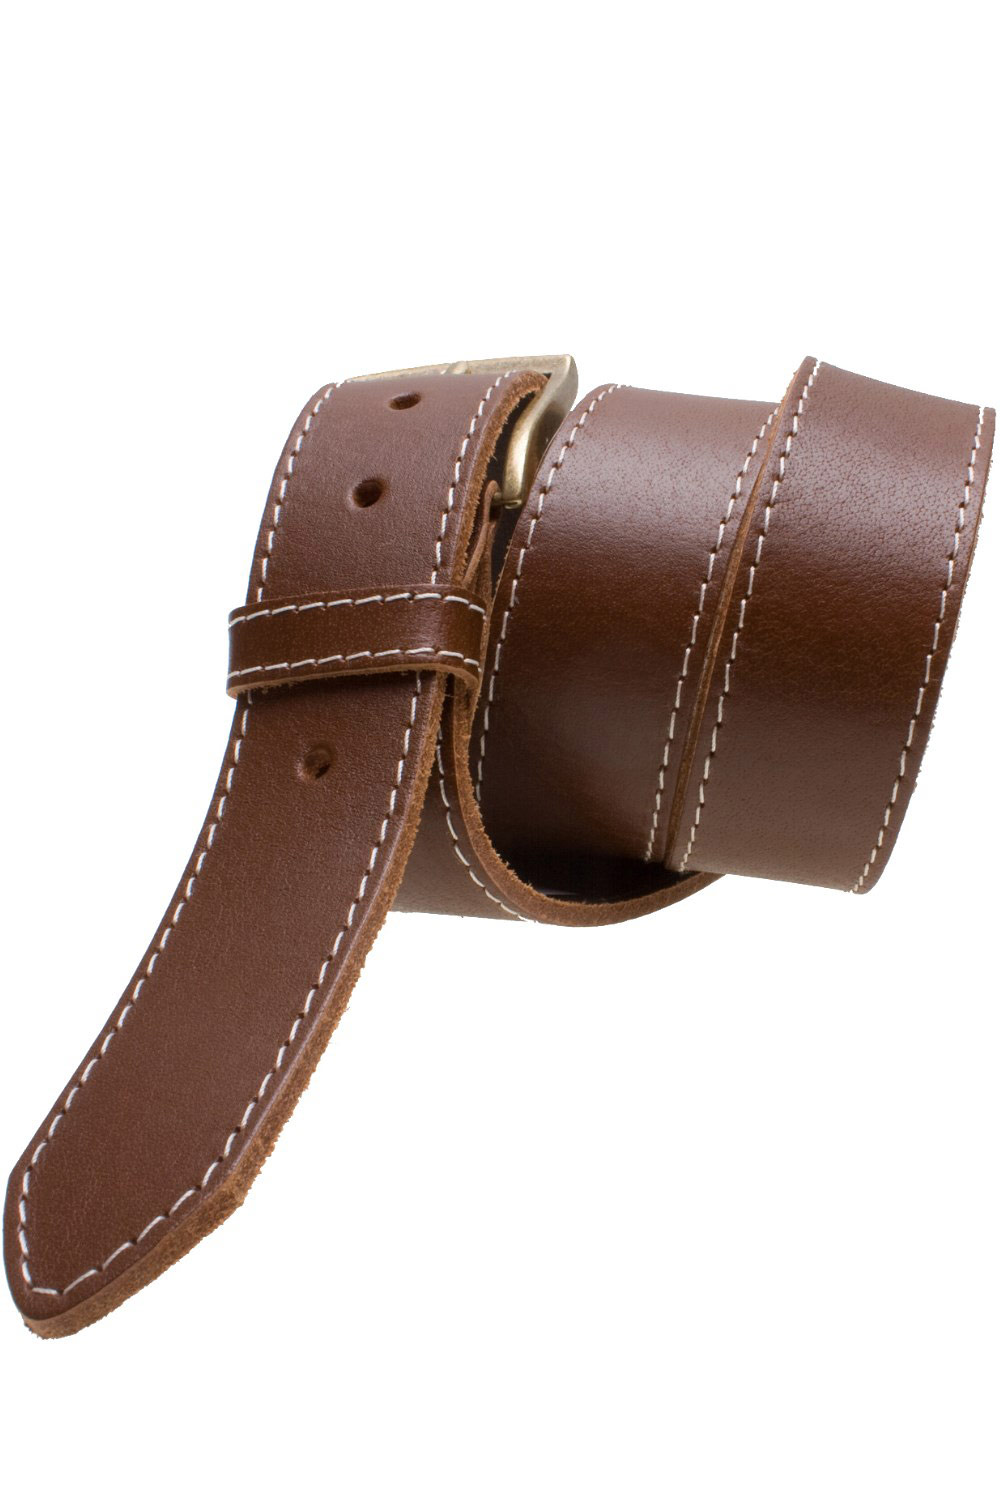 OBOY belt at oboy.com